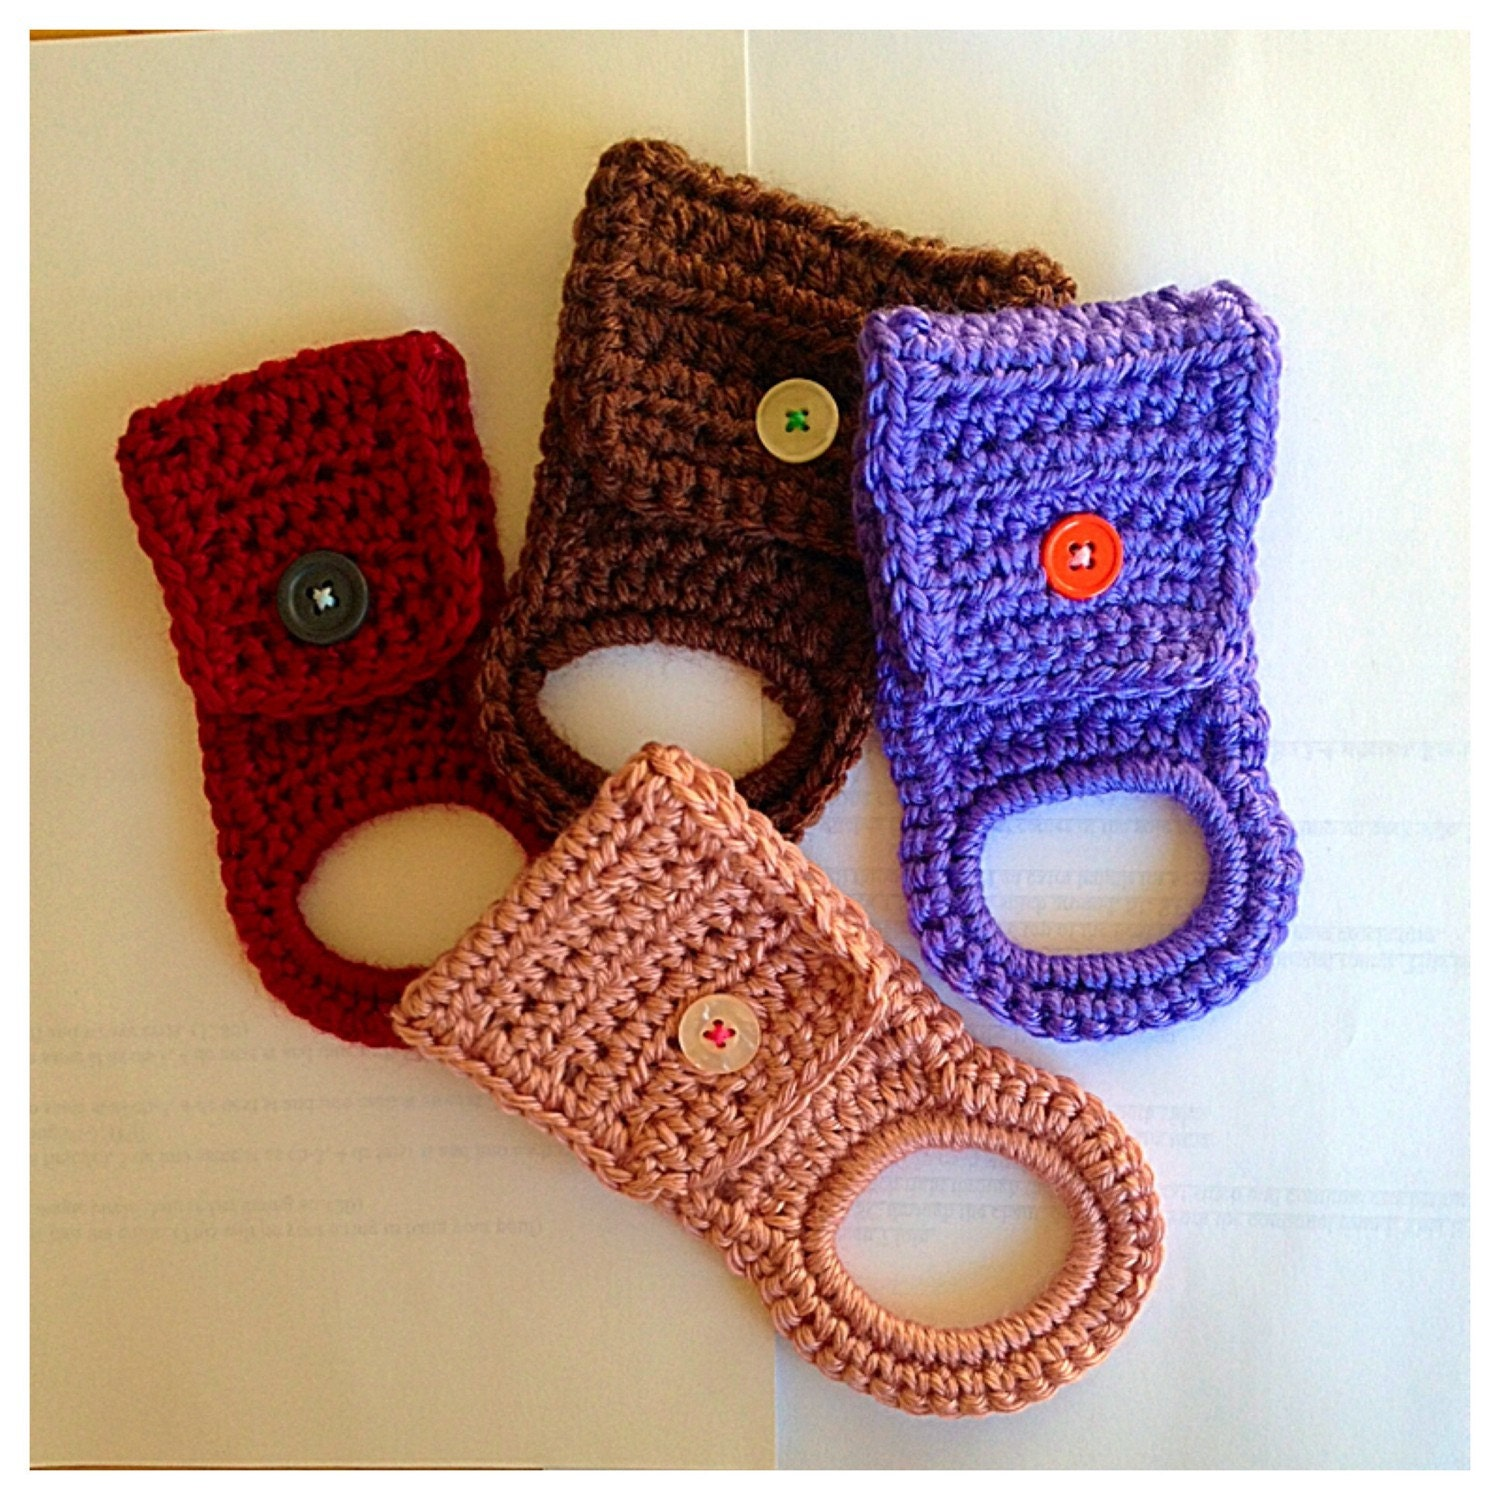 Crochet Elastic Band Kitchen Towel Hanger